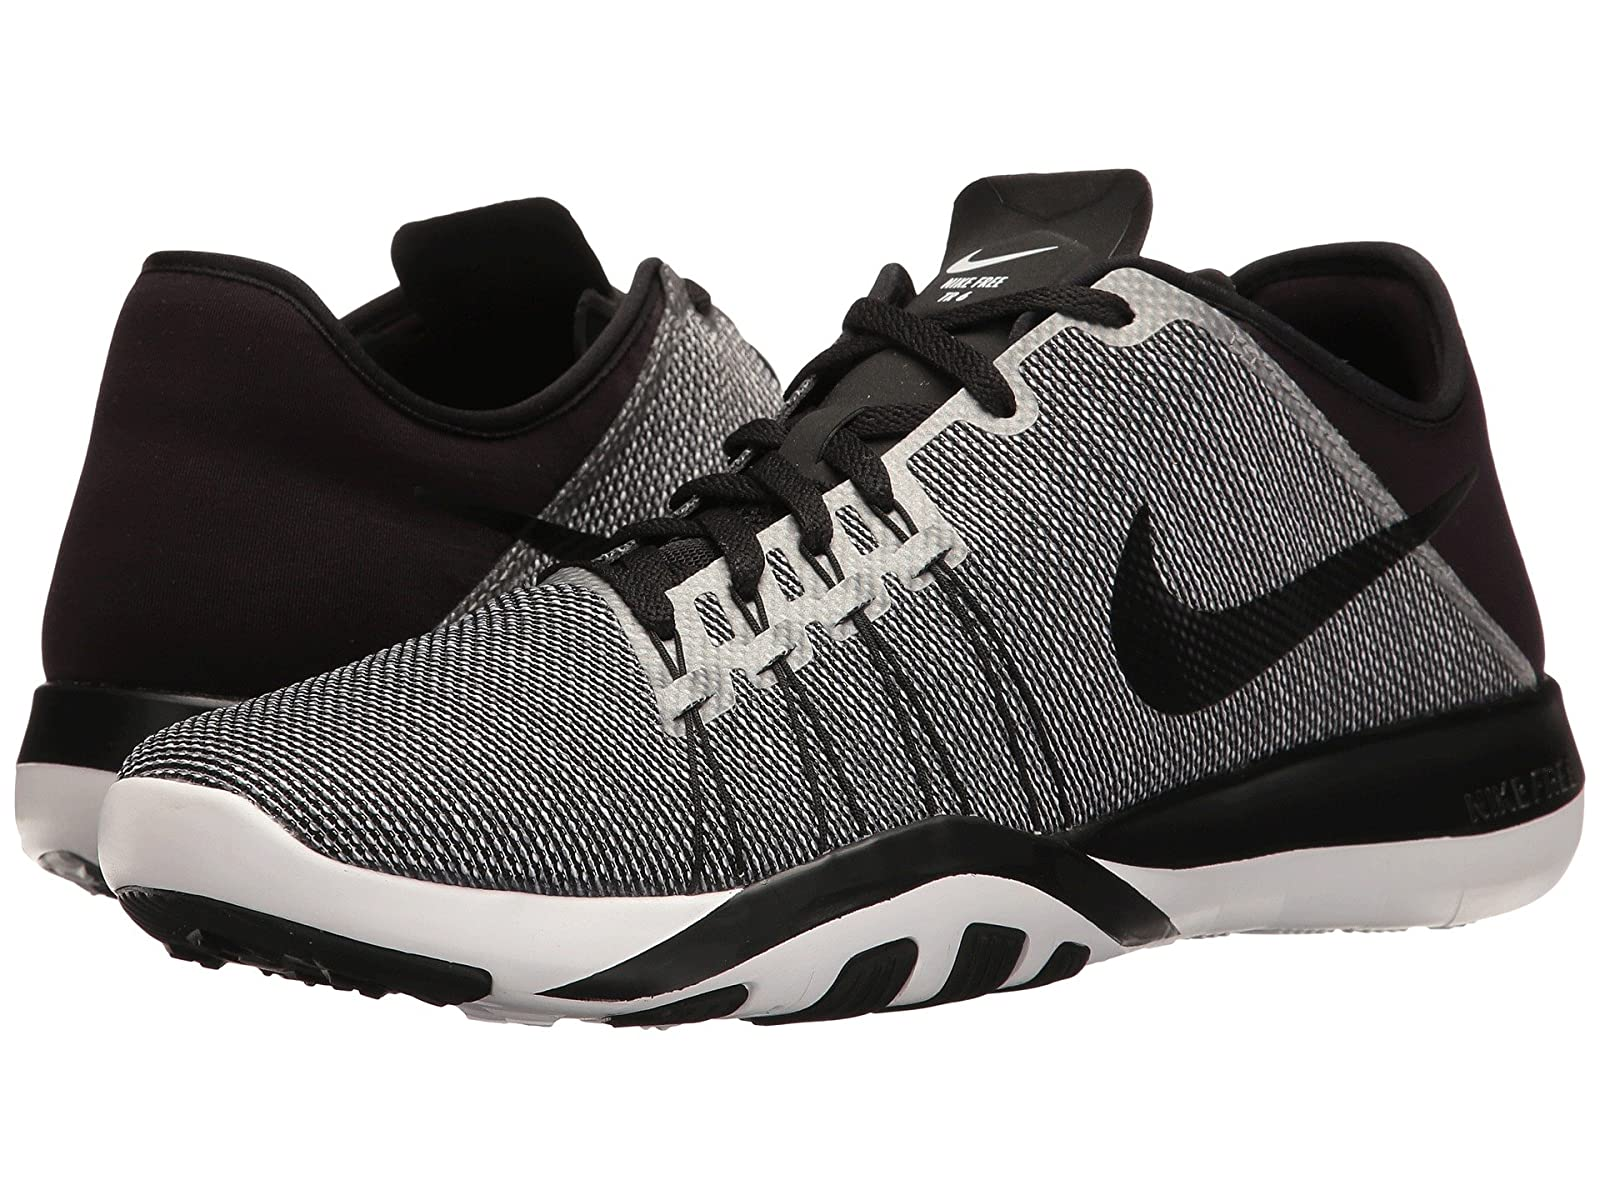 Nike Free TR 6 PRTCheap and distinctive eye-catching shoes